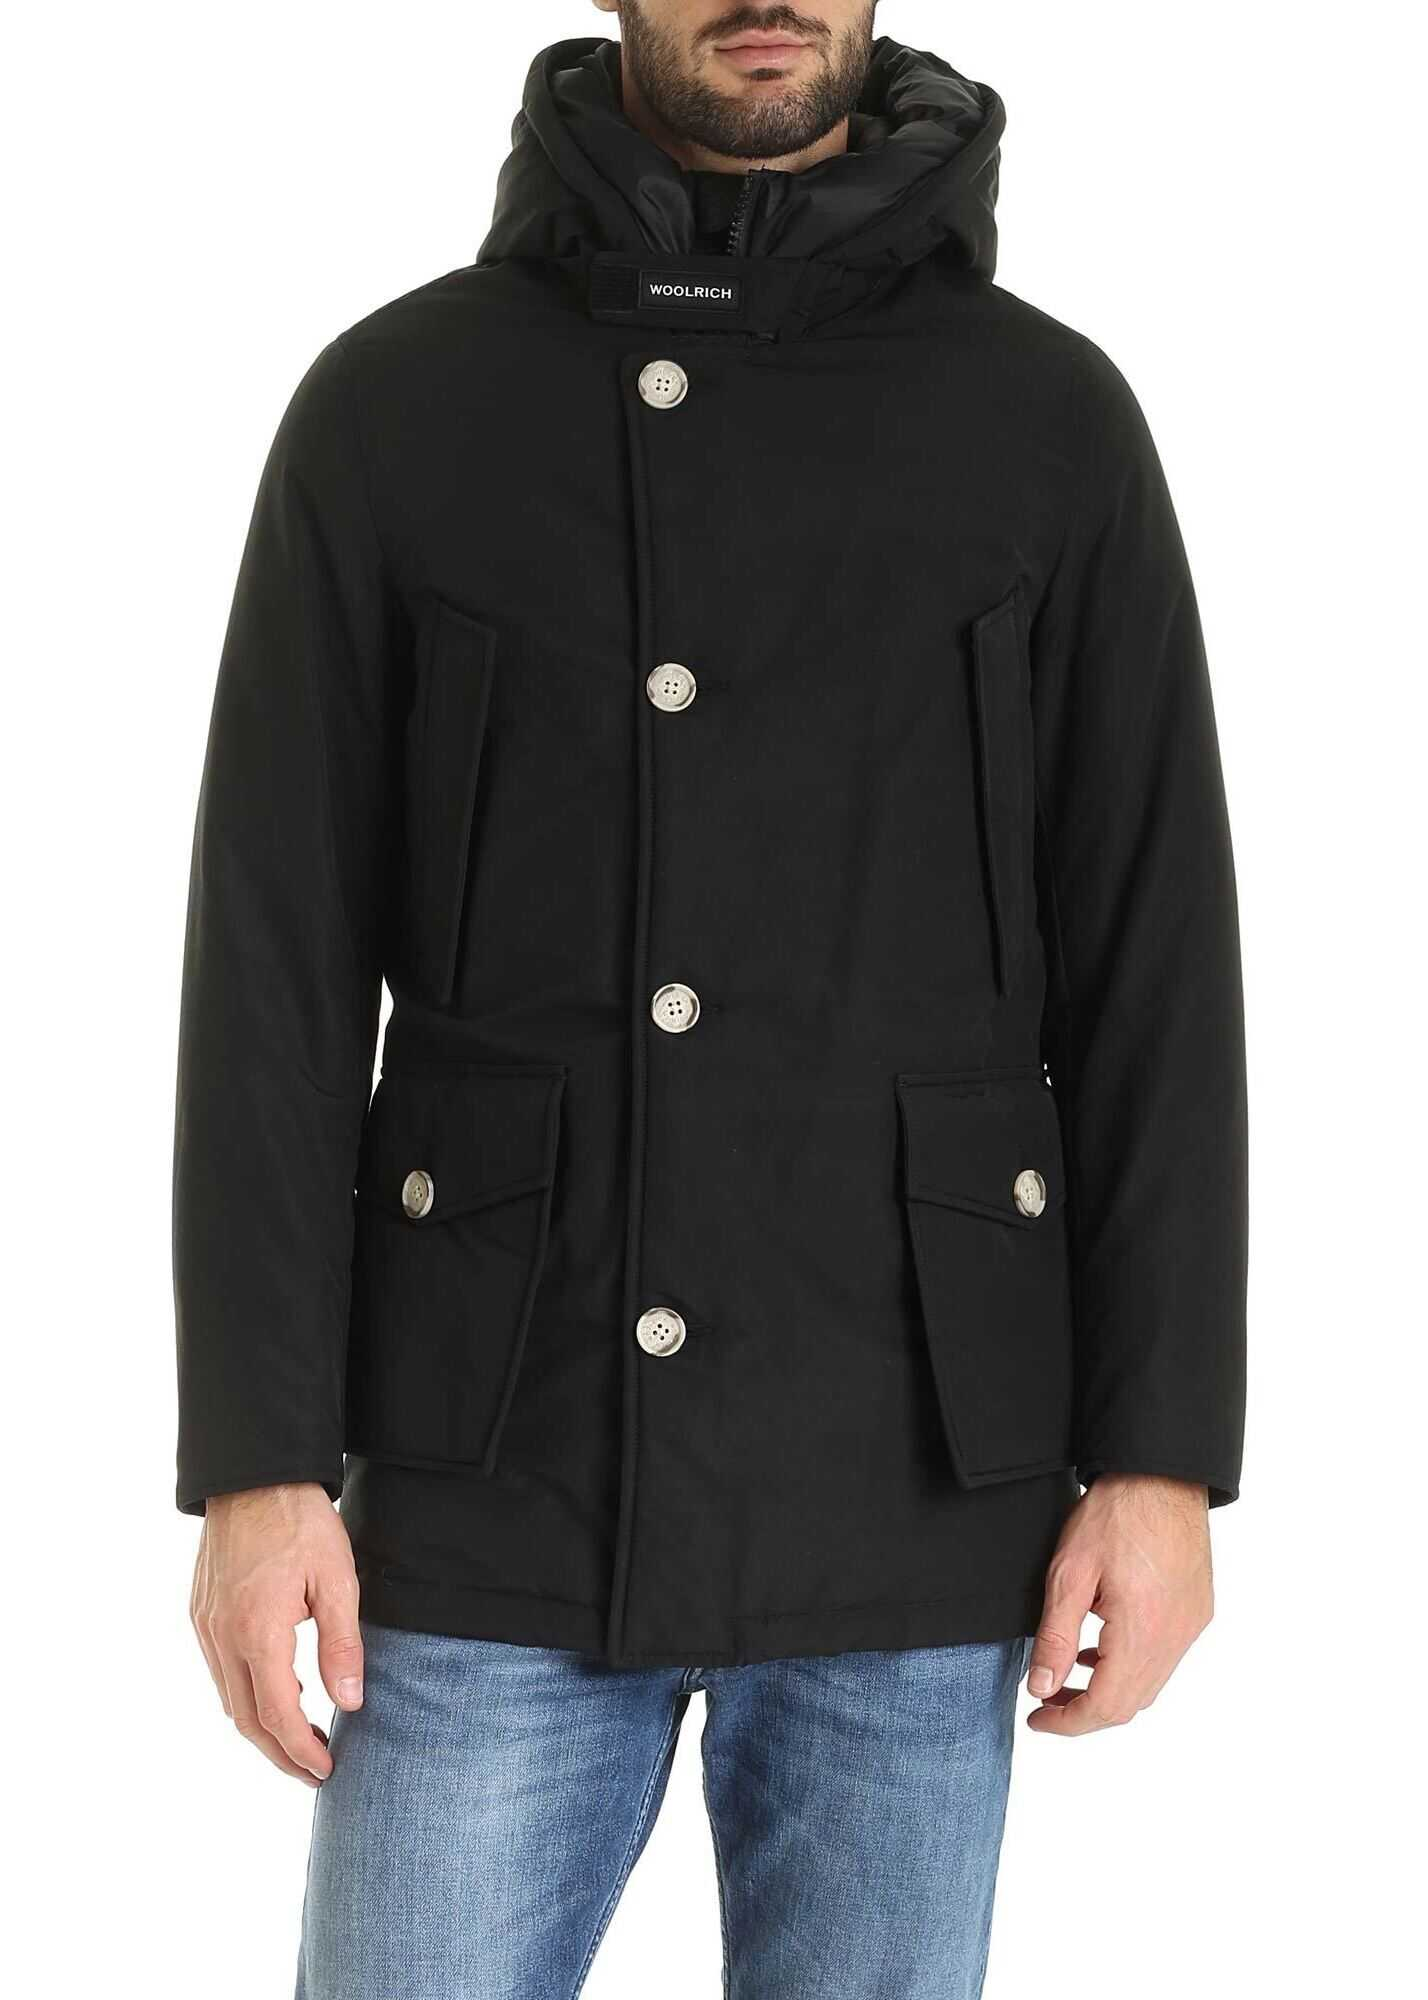 Woolrich Arctic Parka In Black Black imagine